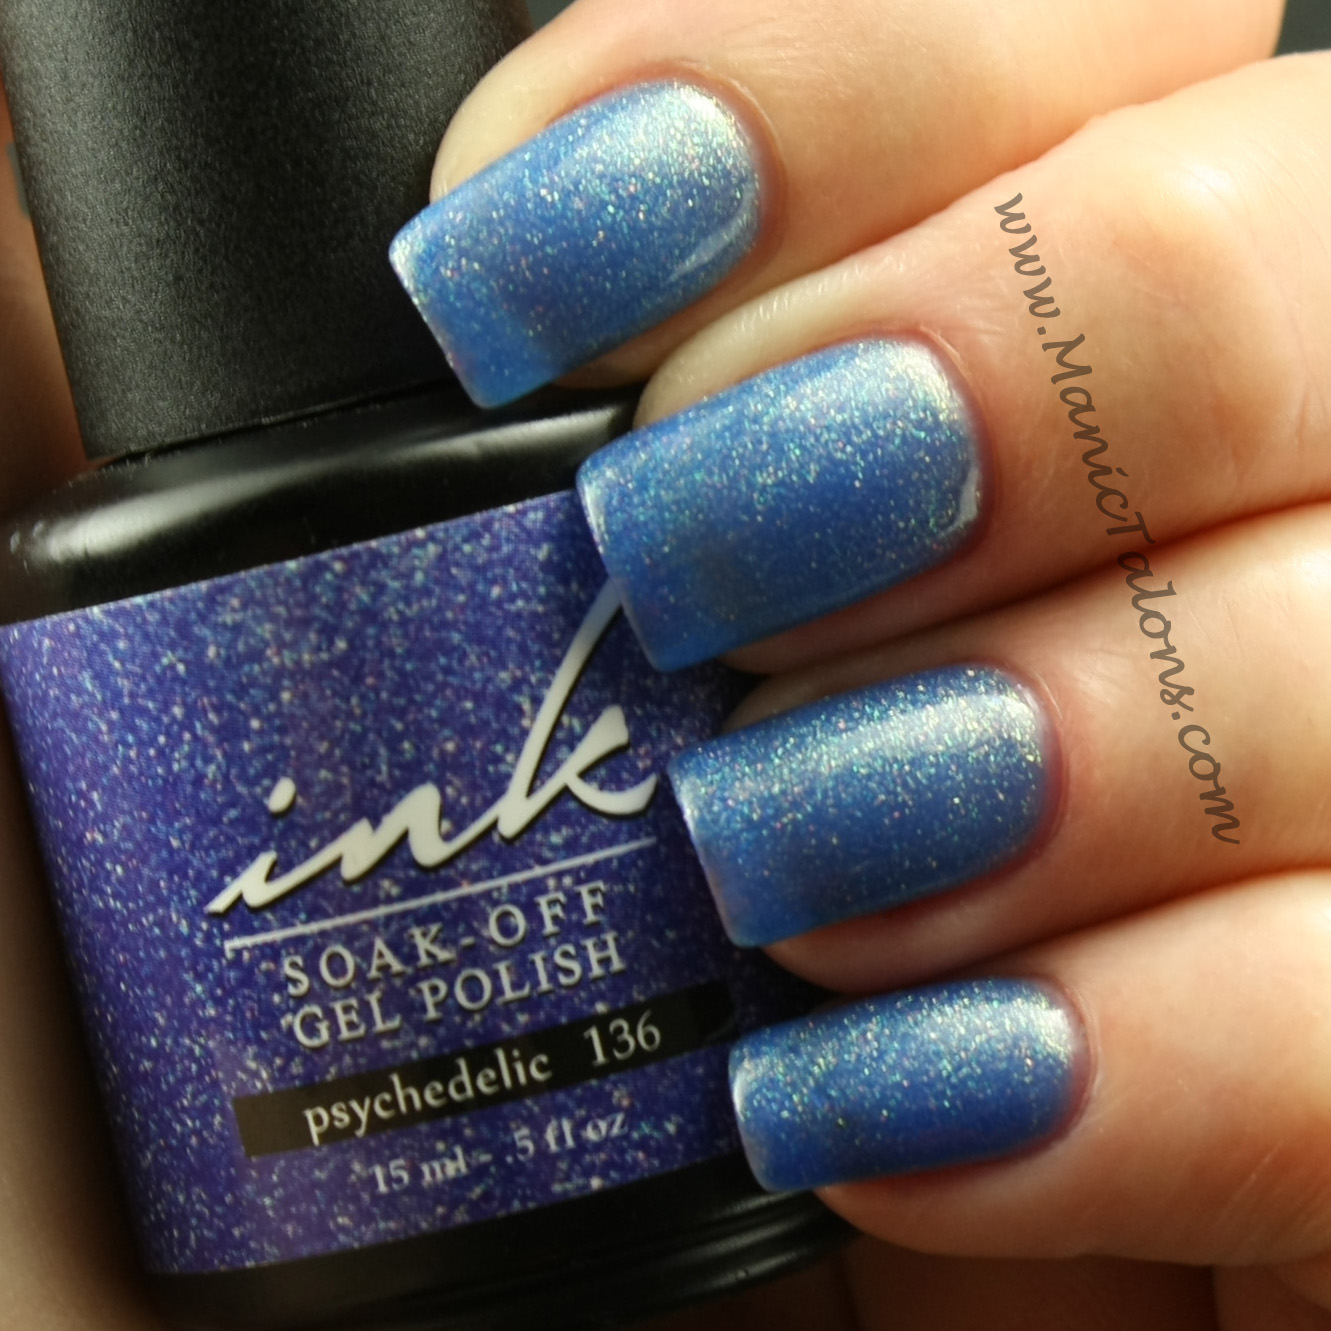 Manic Talons Nail Design: Shimmer packed Jellies by Ink